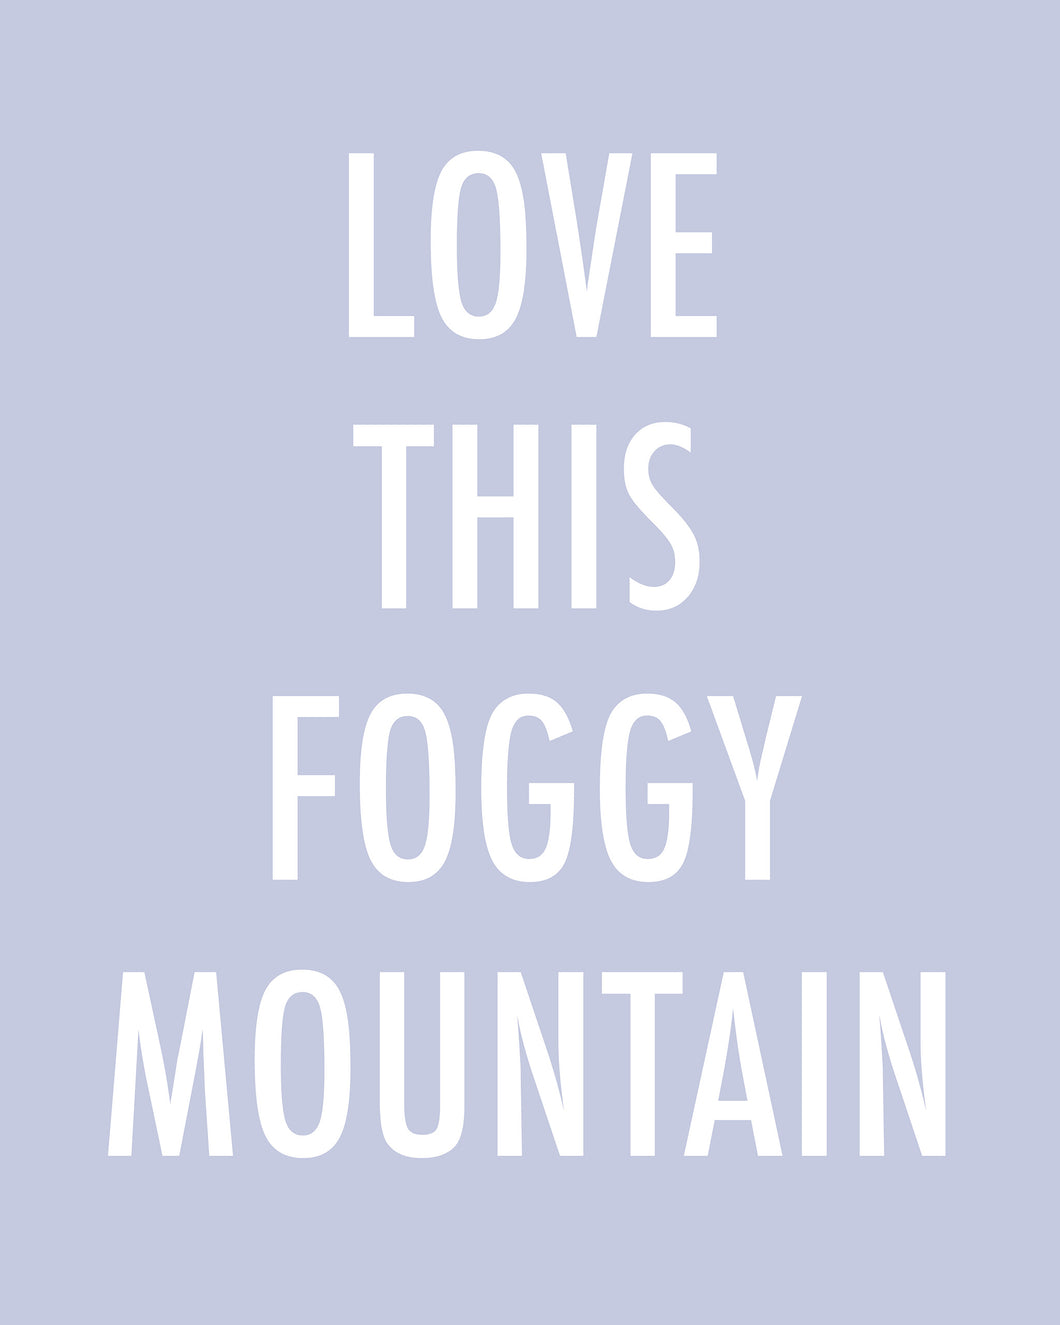 Love This Foggy Mountain - Color Pop Print